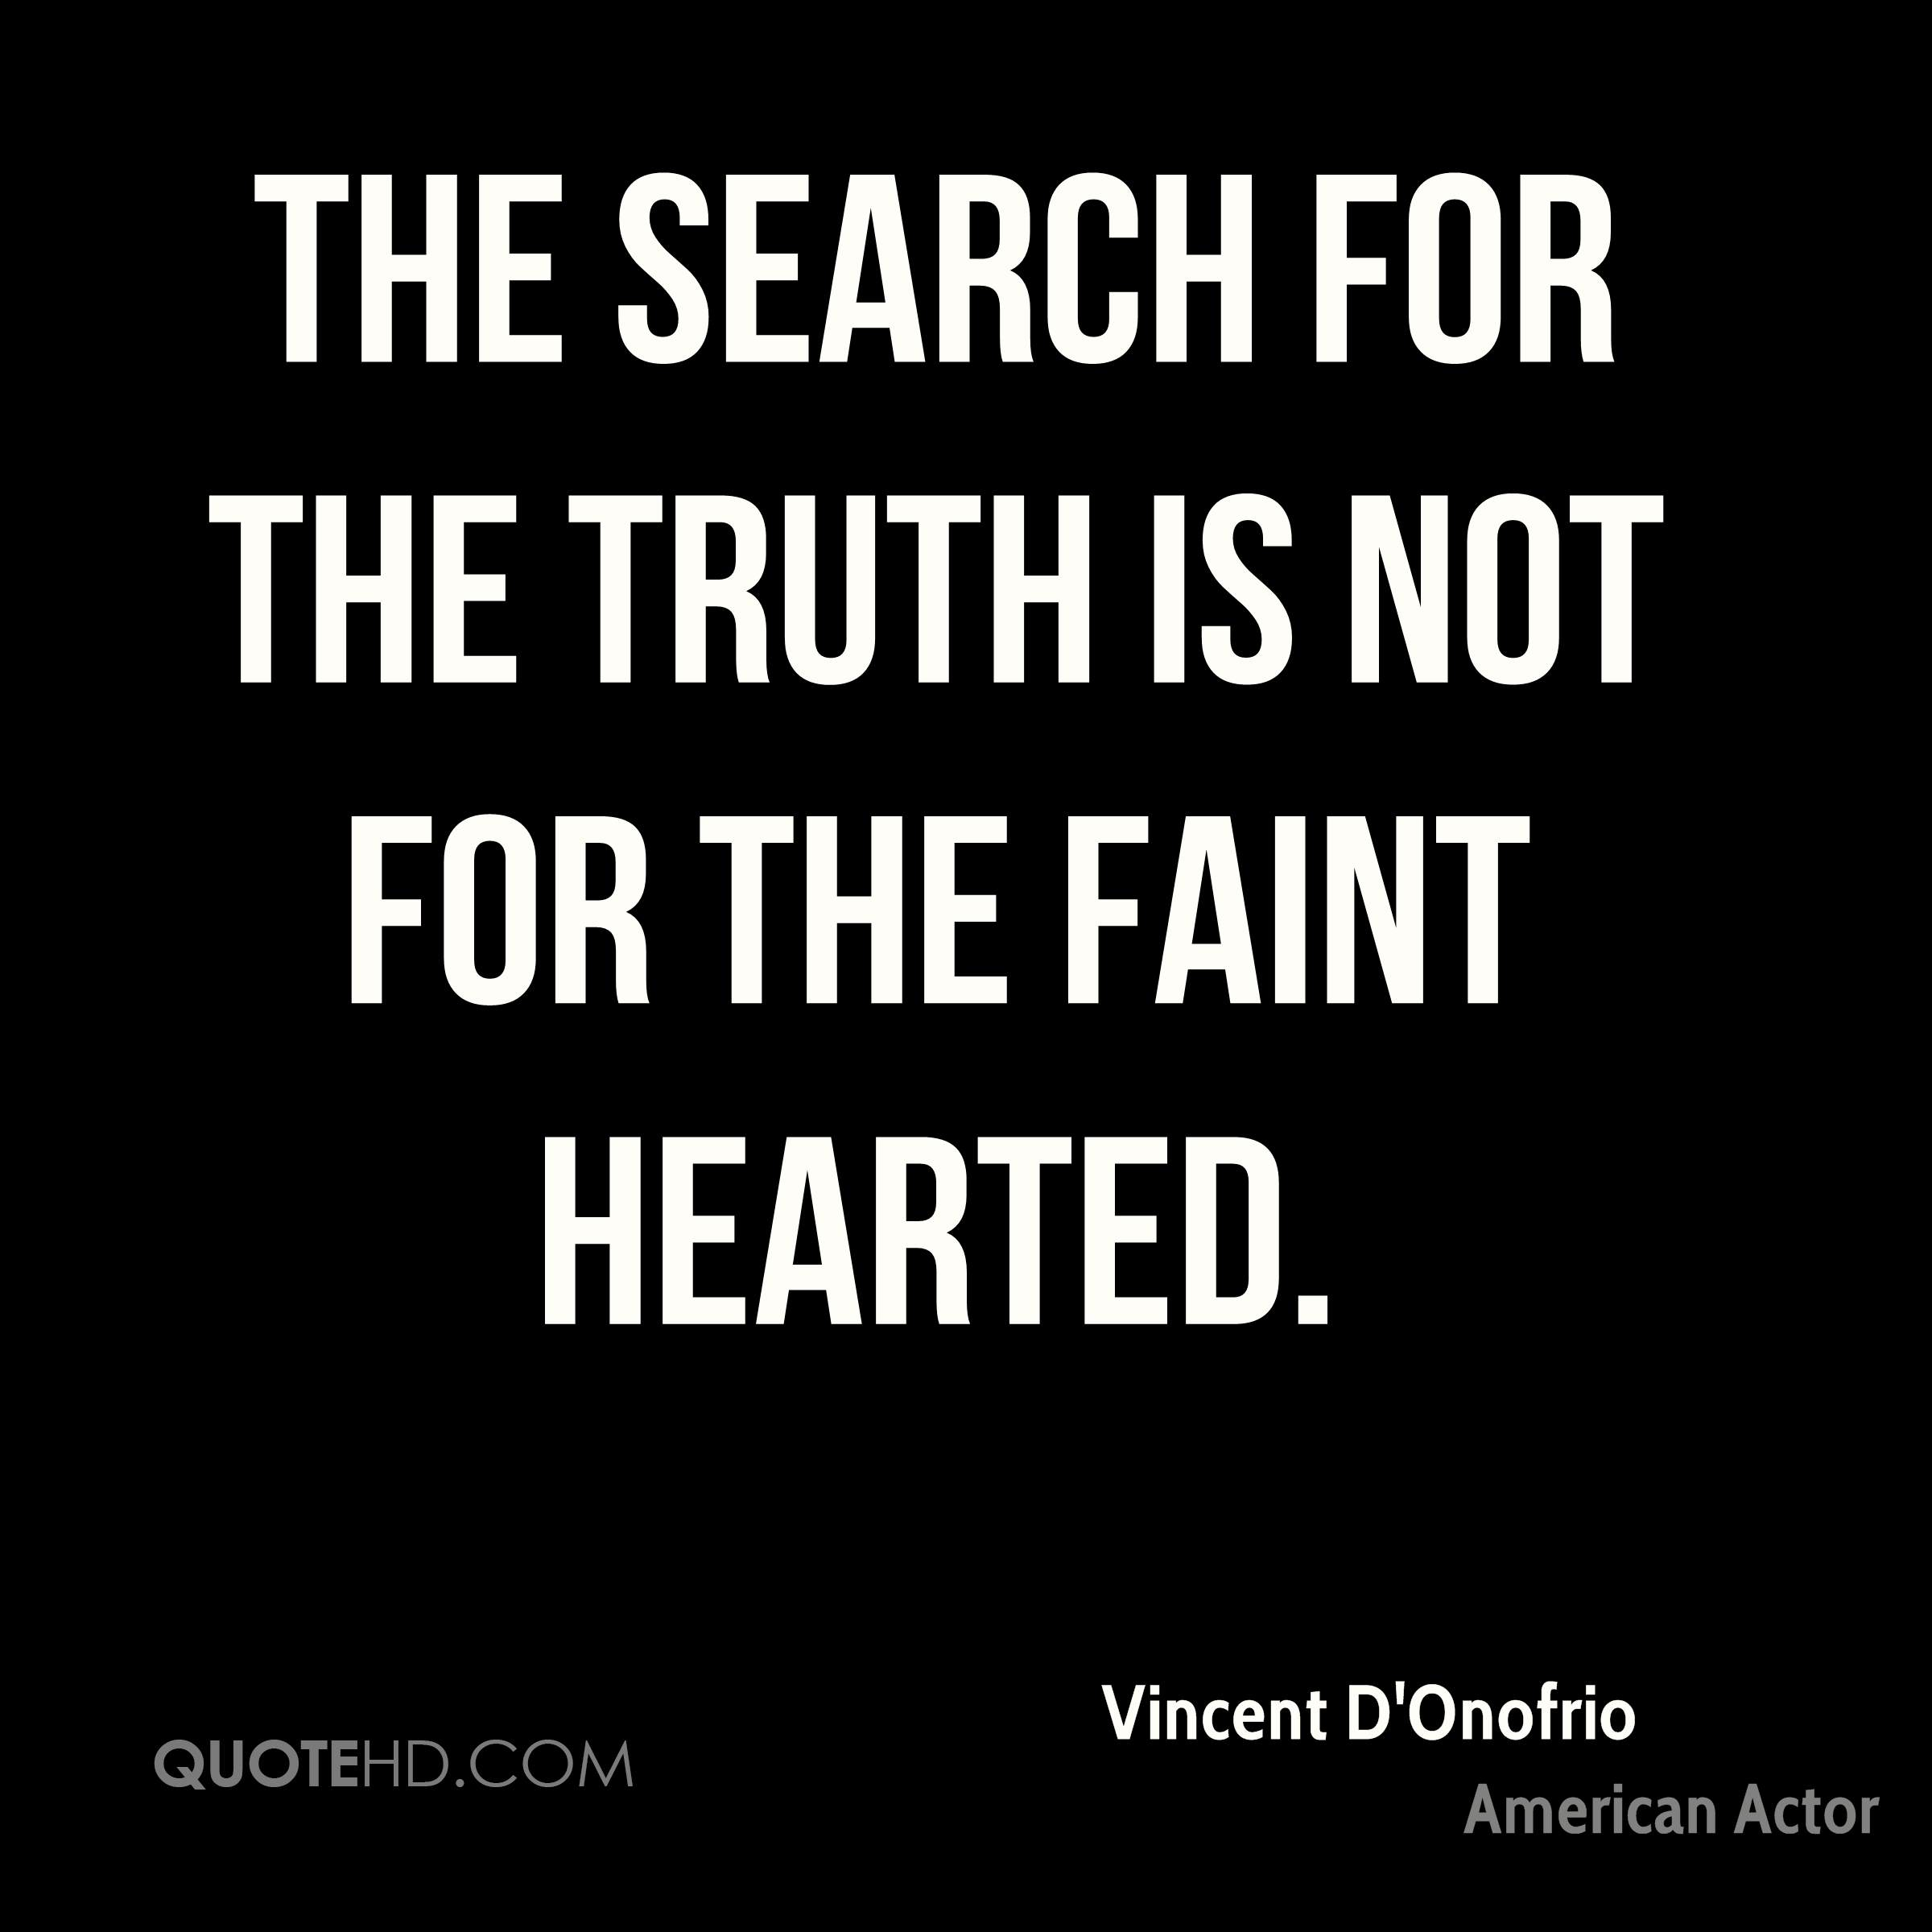 The search for the truth is not for the faint hearted.